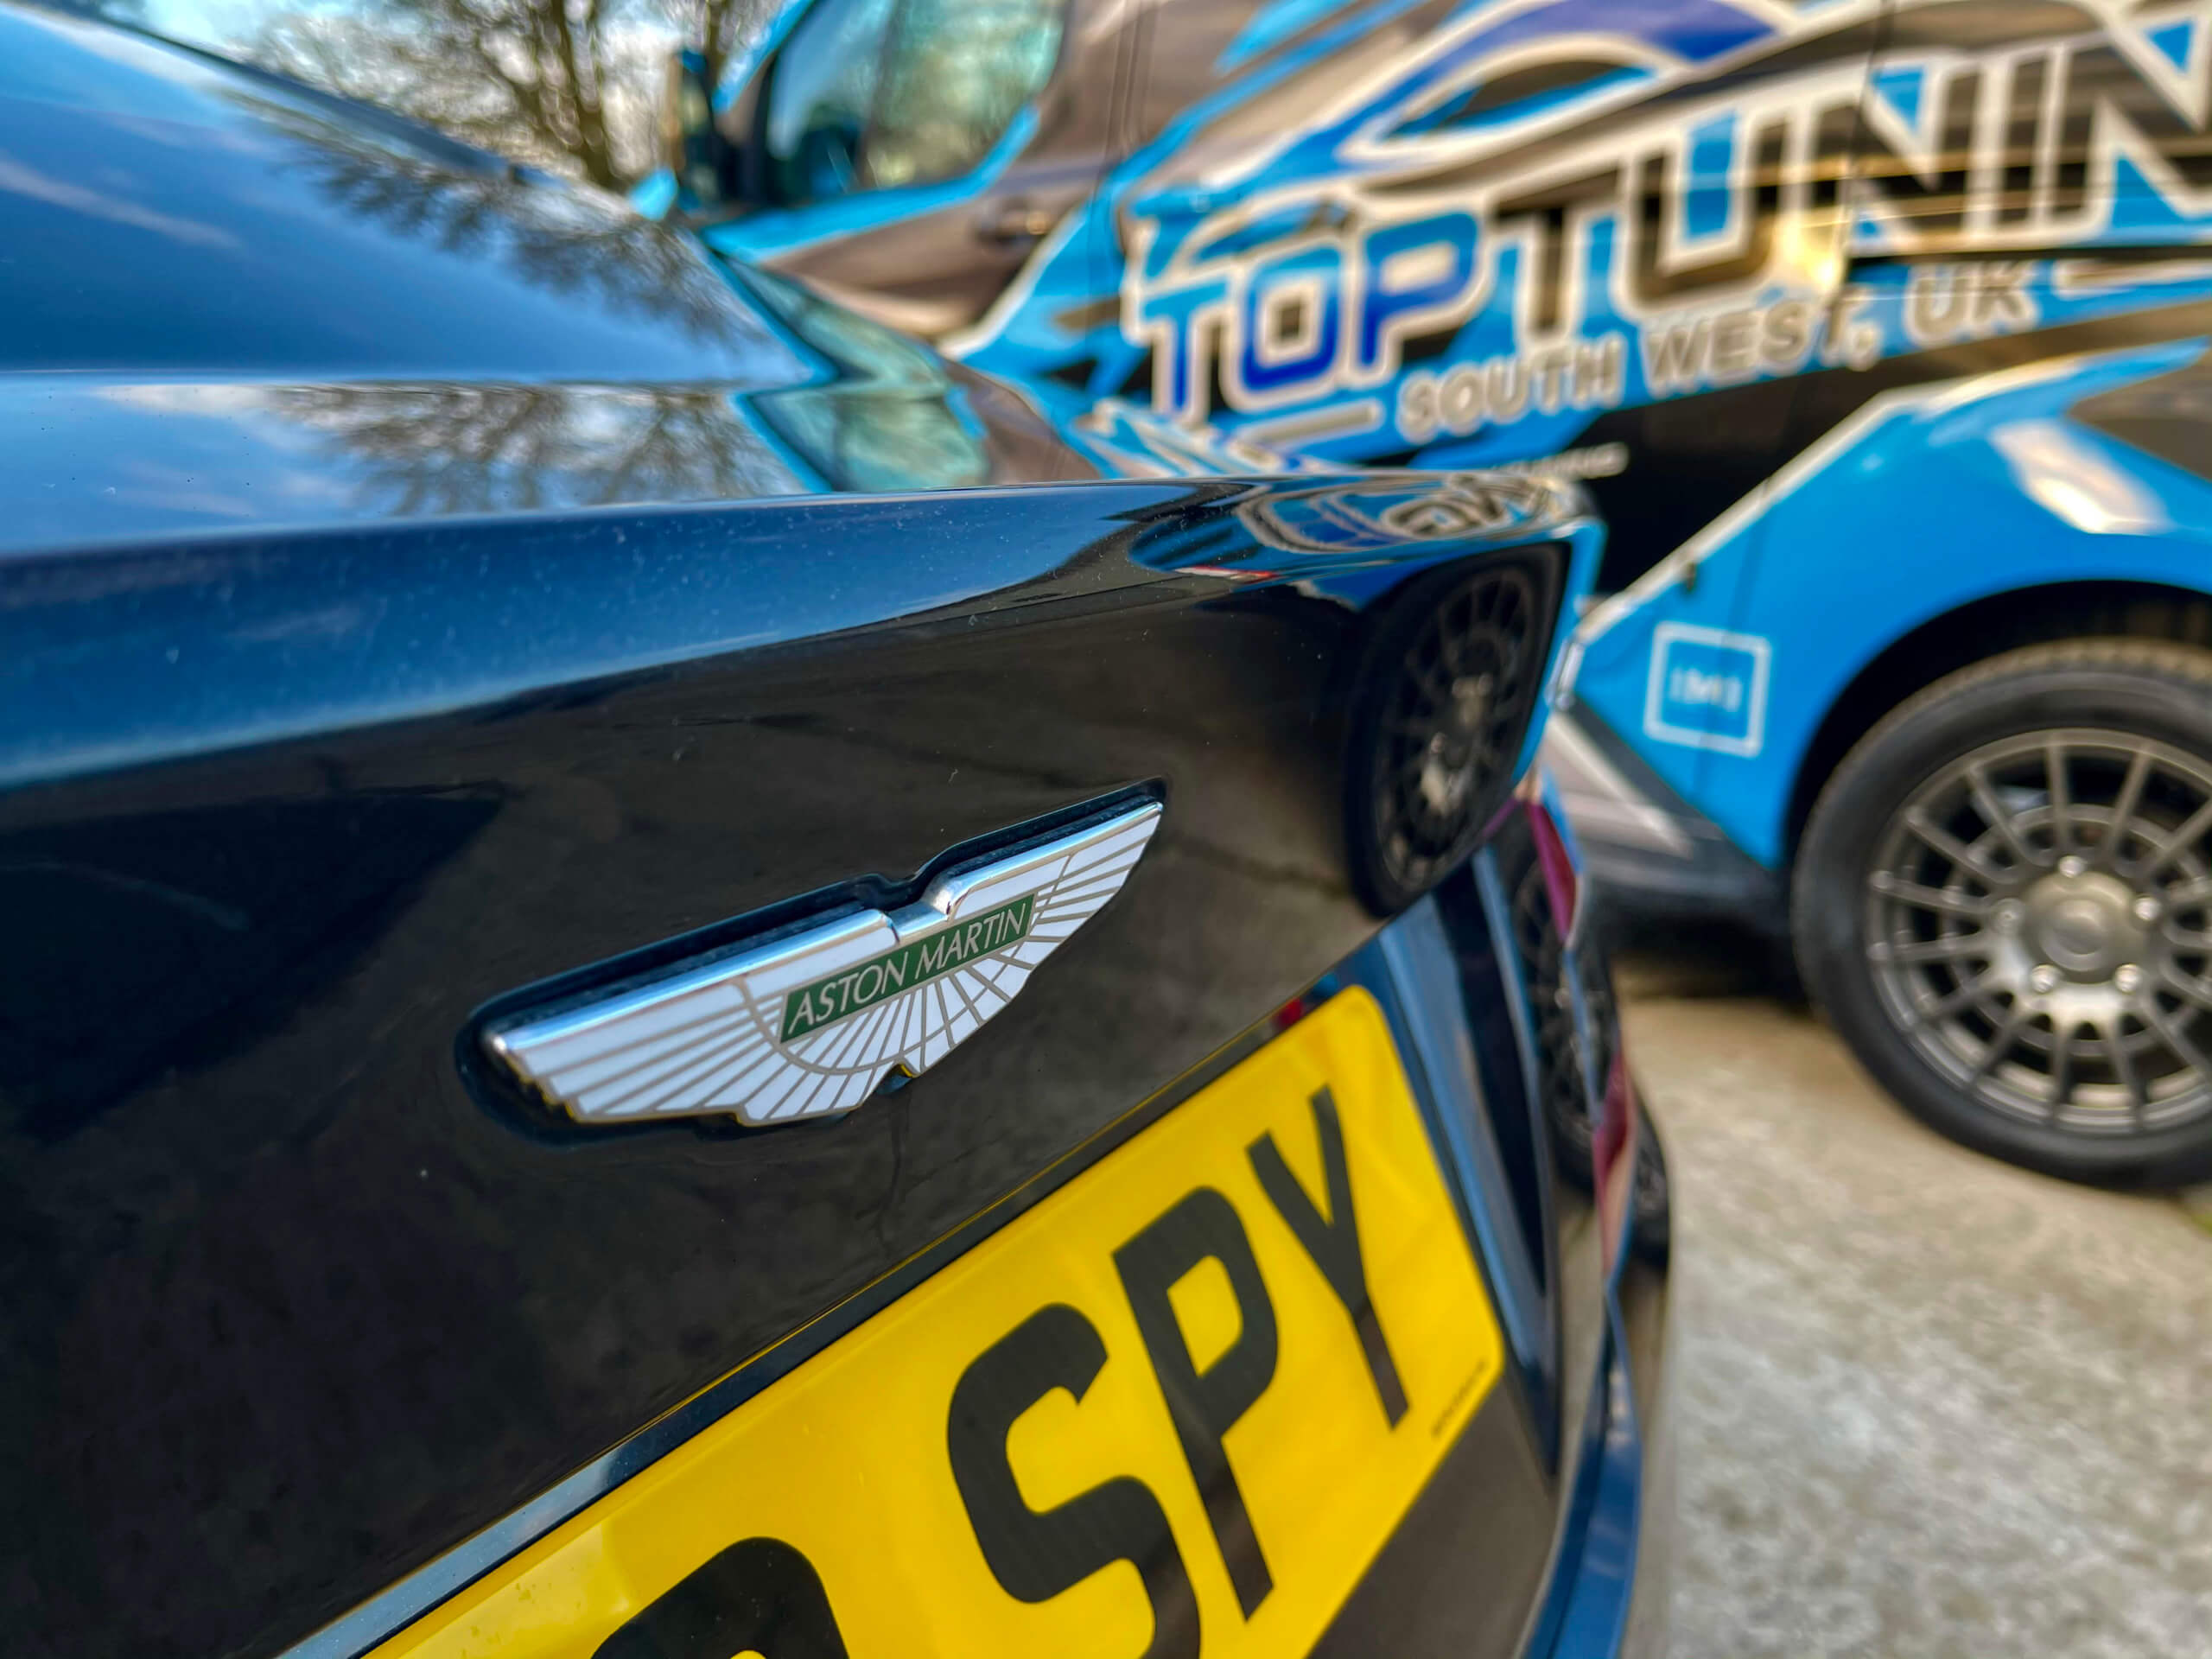 Close up of Aston Martin next to Top-tuning van